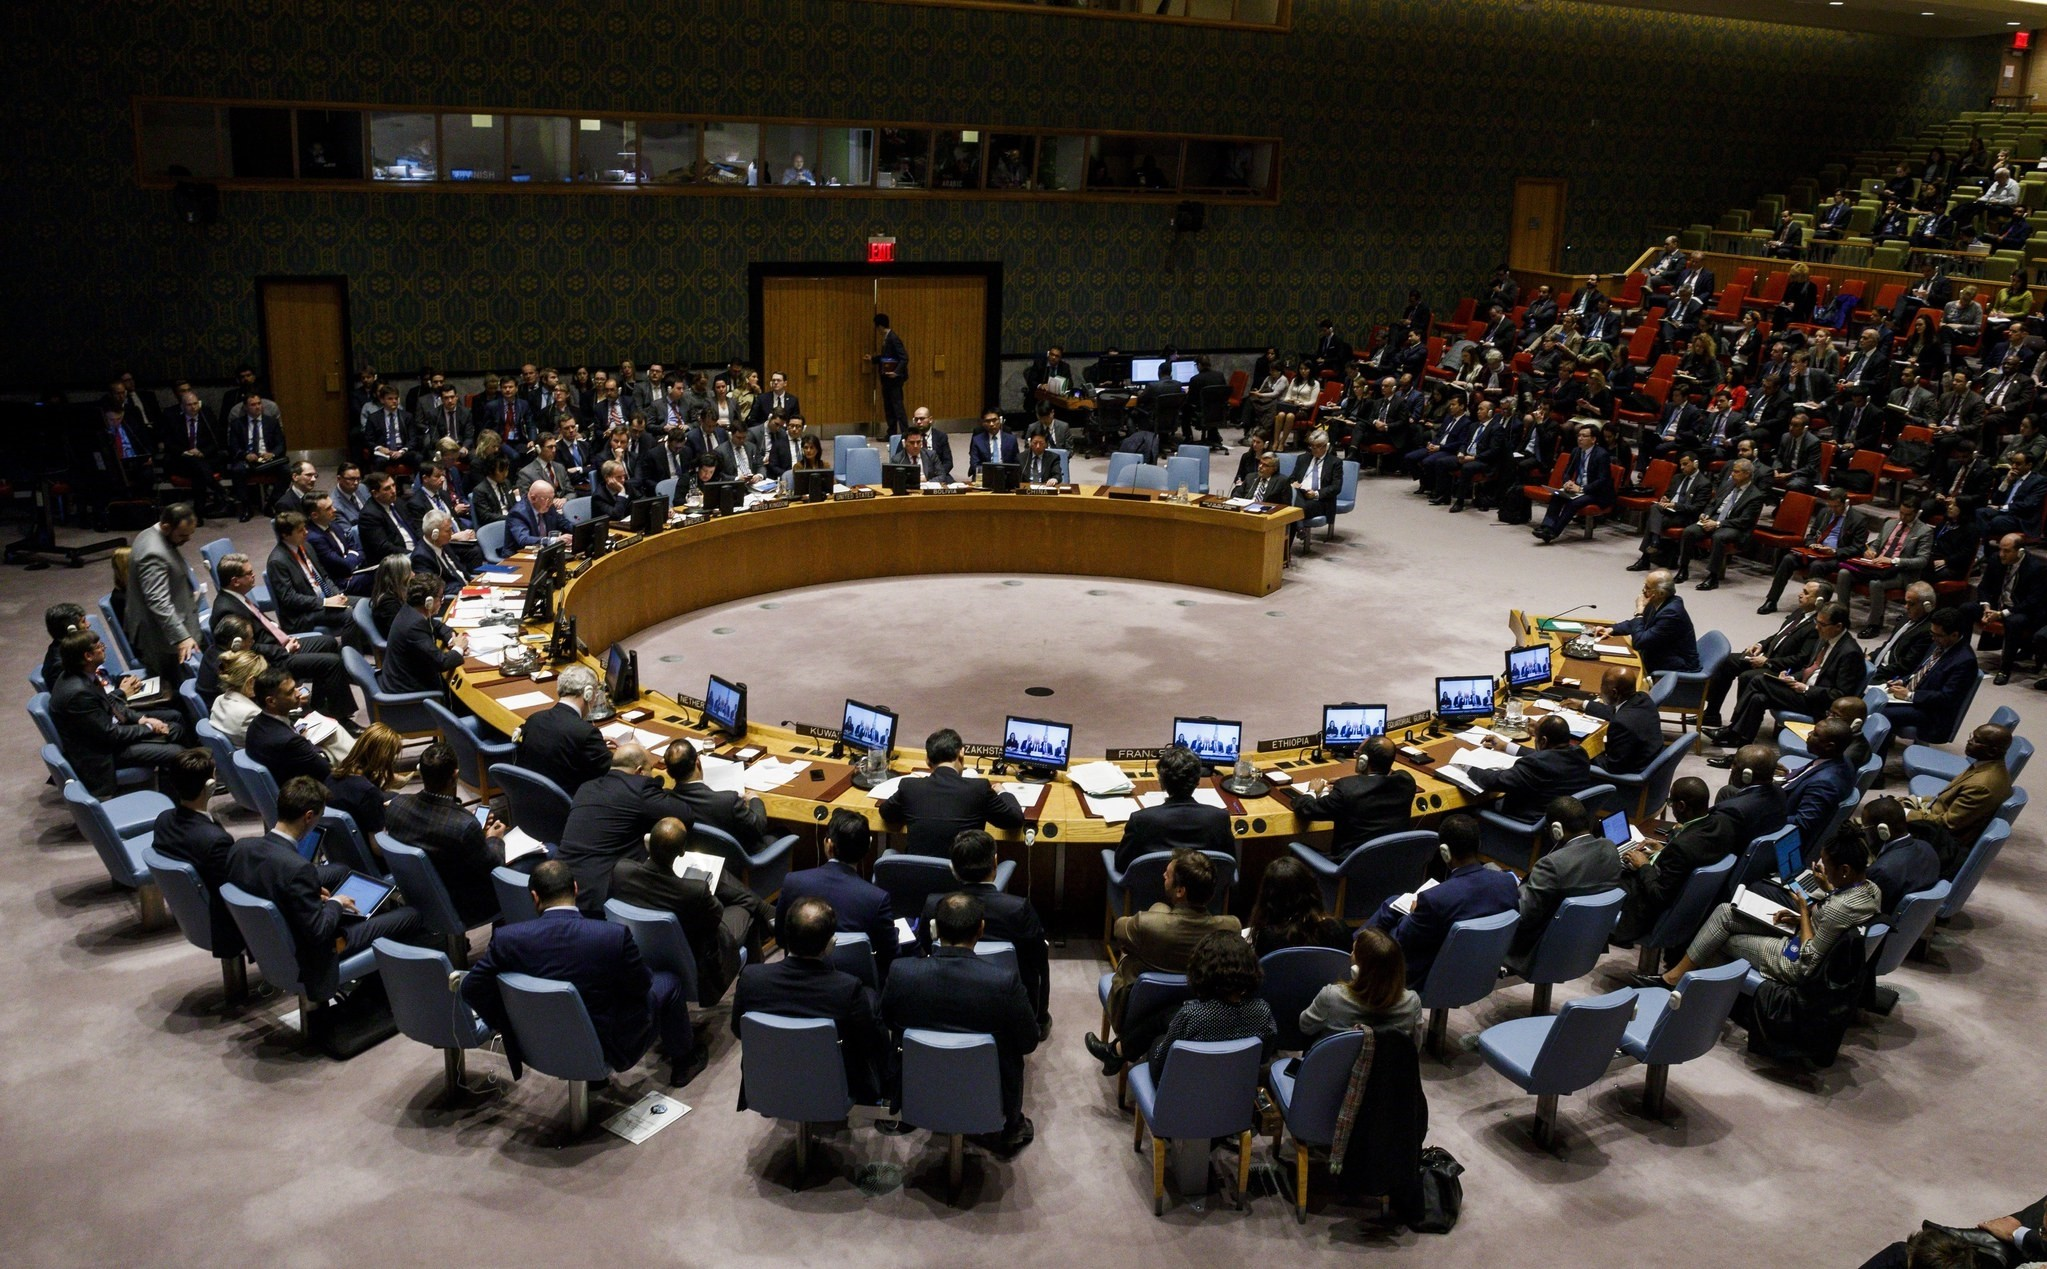 Diplomats gather for an emergency United Nations Security Council meeting in response to a suspected chemical weapons attack in Syria at United Nations headquarters in New York, New York, USA, 09 April 2018. (EPA Photo)